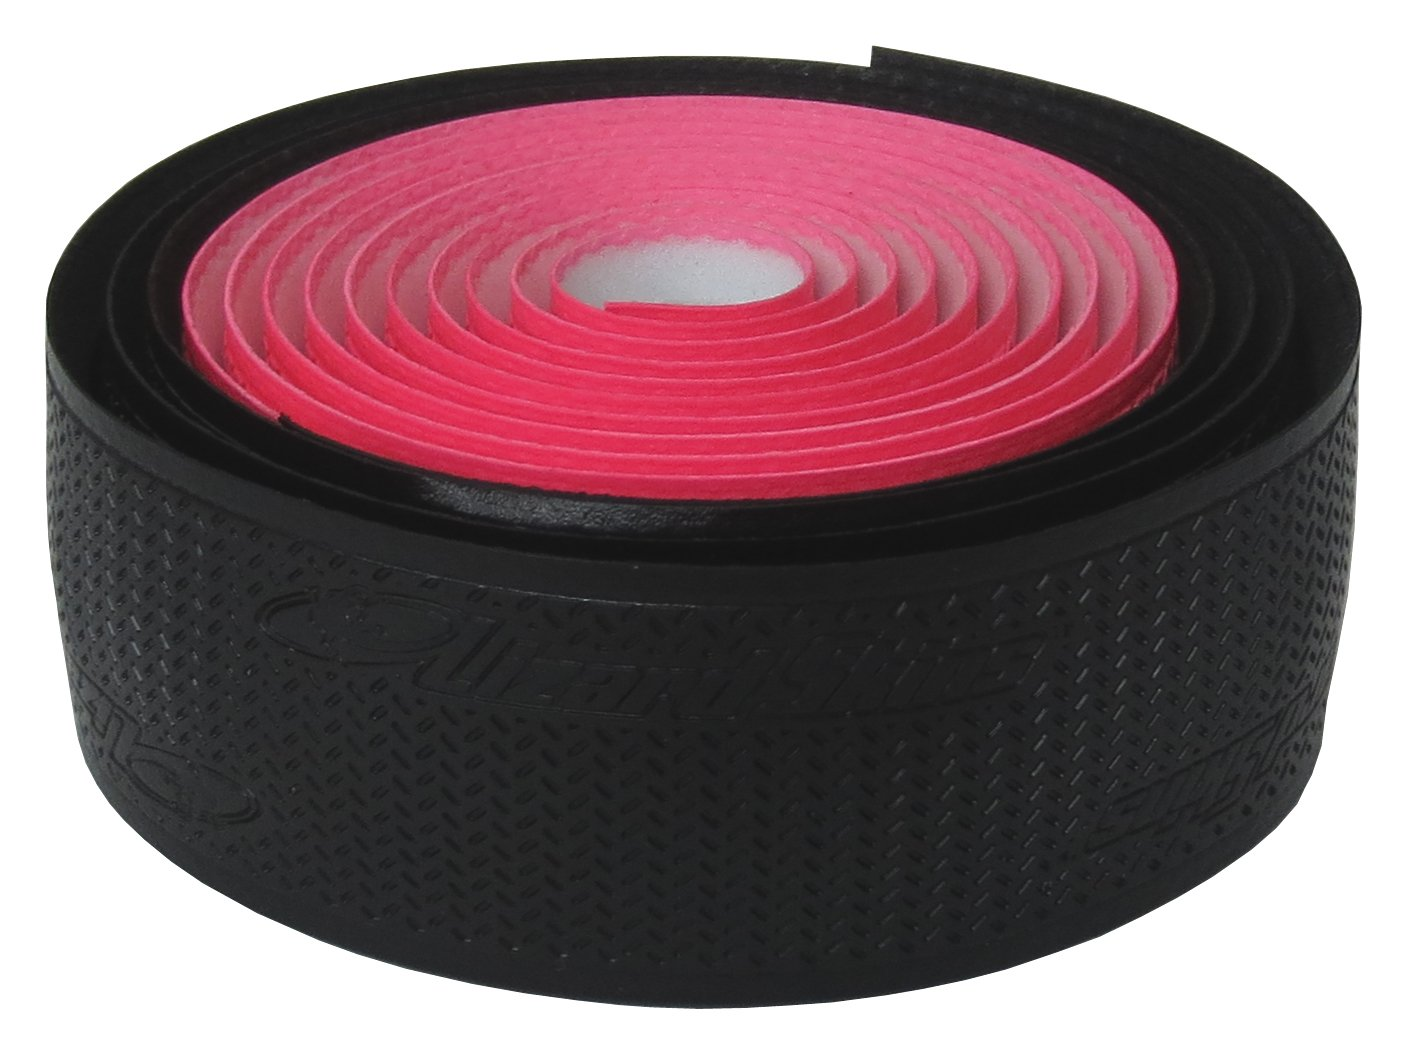 Lizard Skins DSP 2.5mm Dual Handlebar Tape - Black / Neon Pink by Lizard Skins